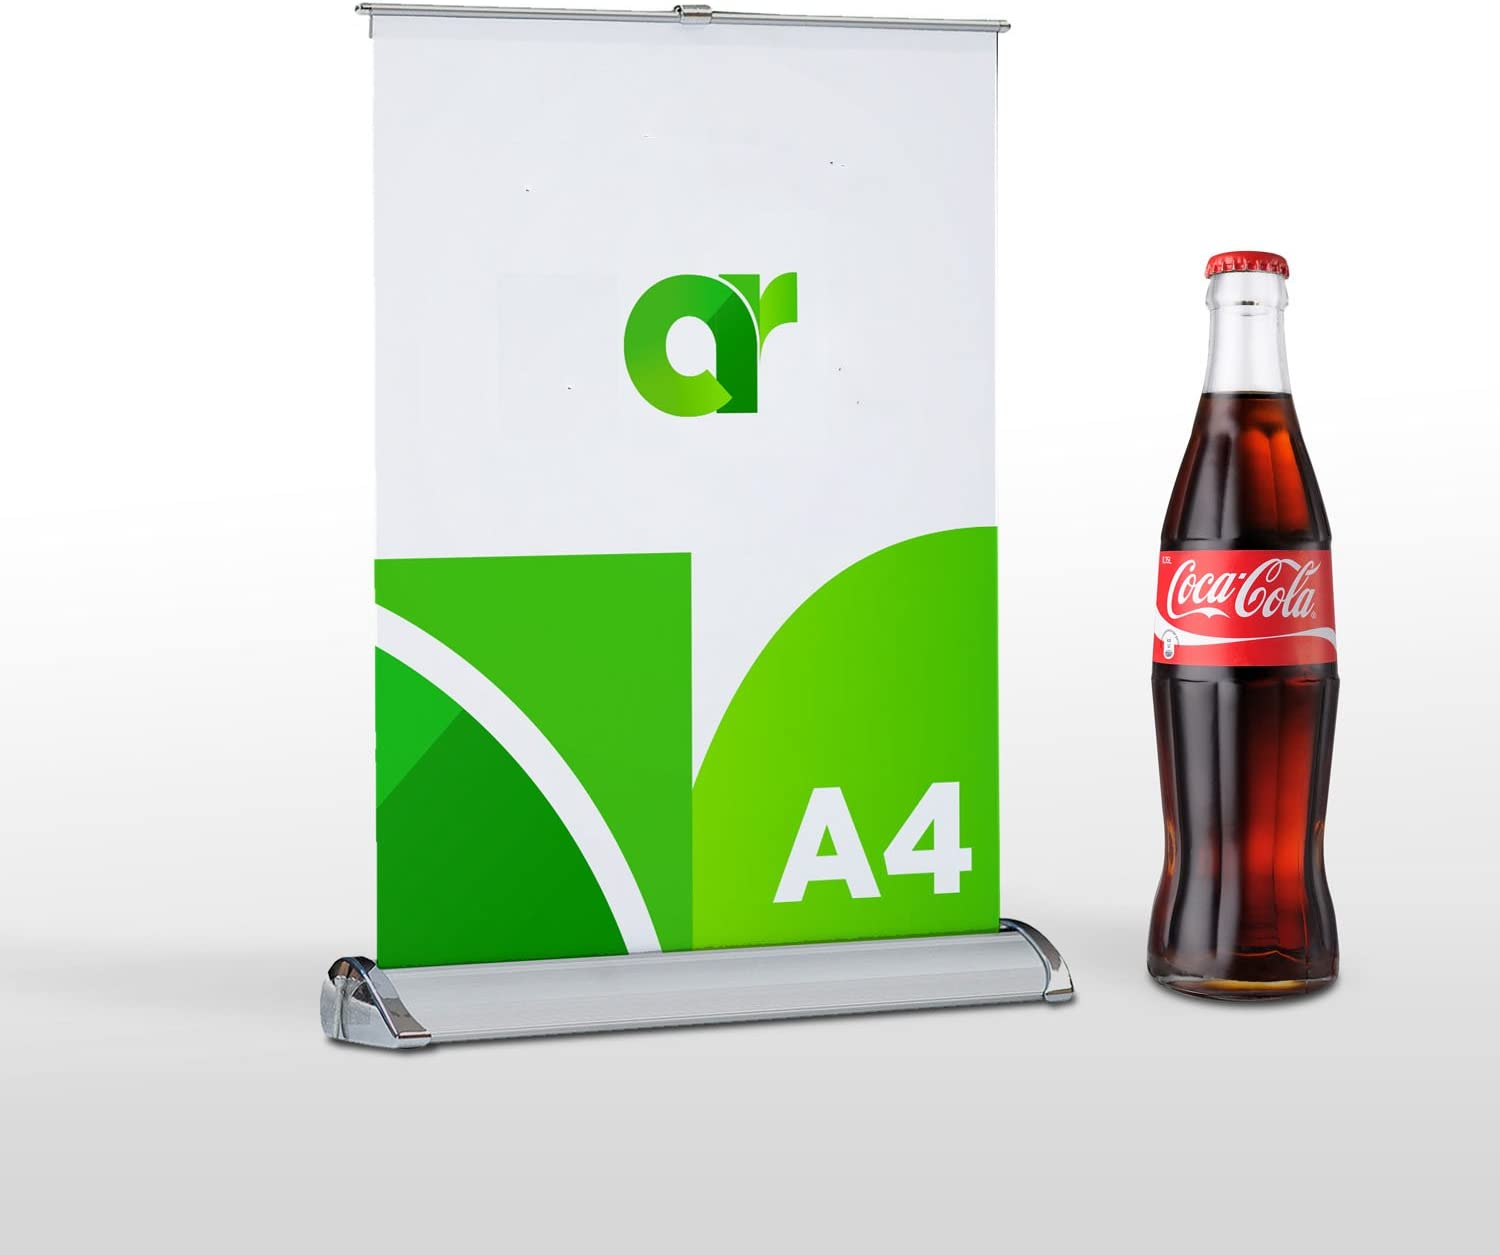 Banners are not Included Fits 8 1//2in x 11 1//2in Banners 7 pcs,A4,Mini Table Top Retractable Banner Stands Includes 5 Banner Stands